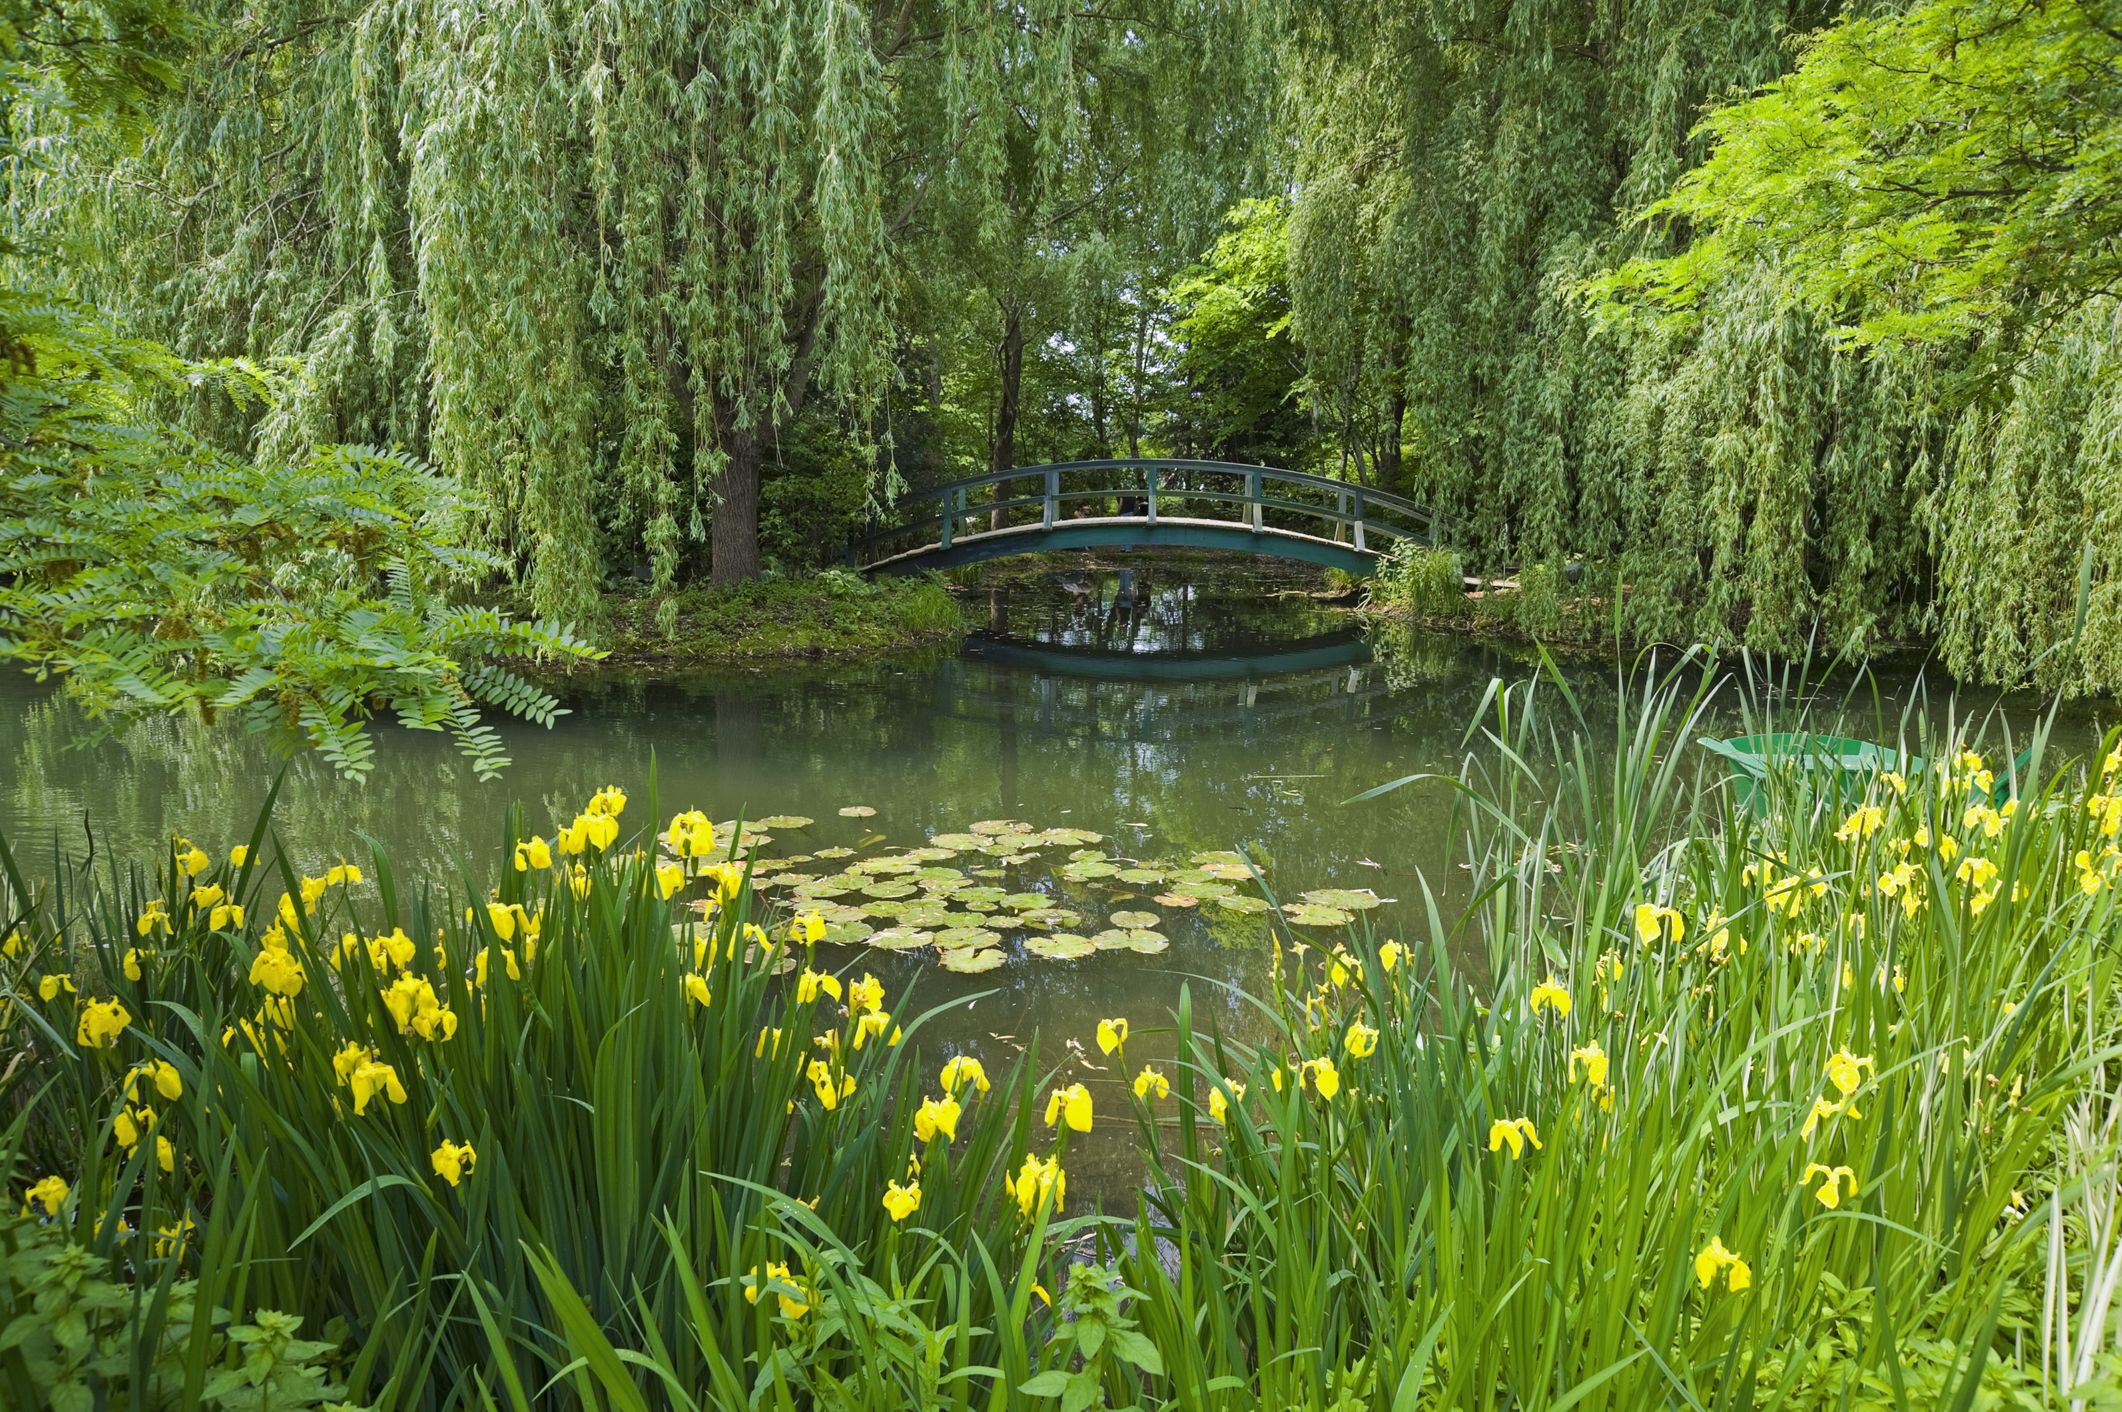 Monet S Garden Our Tour Of Giverny: Claude Monet's Gardens At Giverny: Our Complete Guide